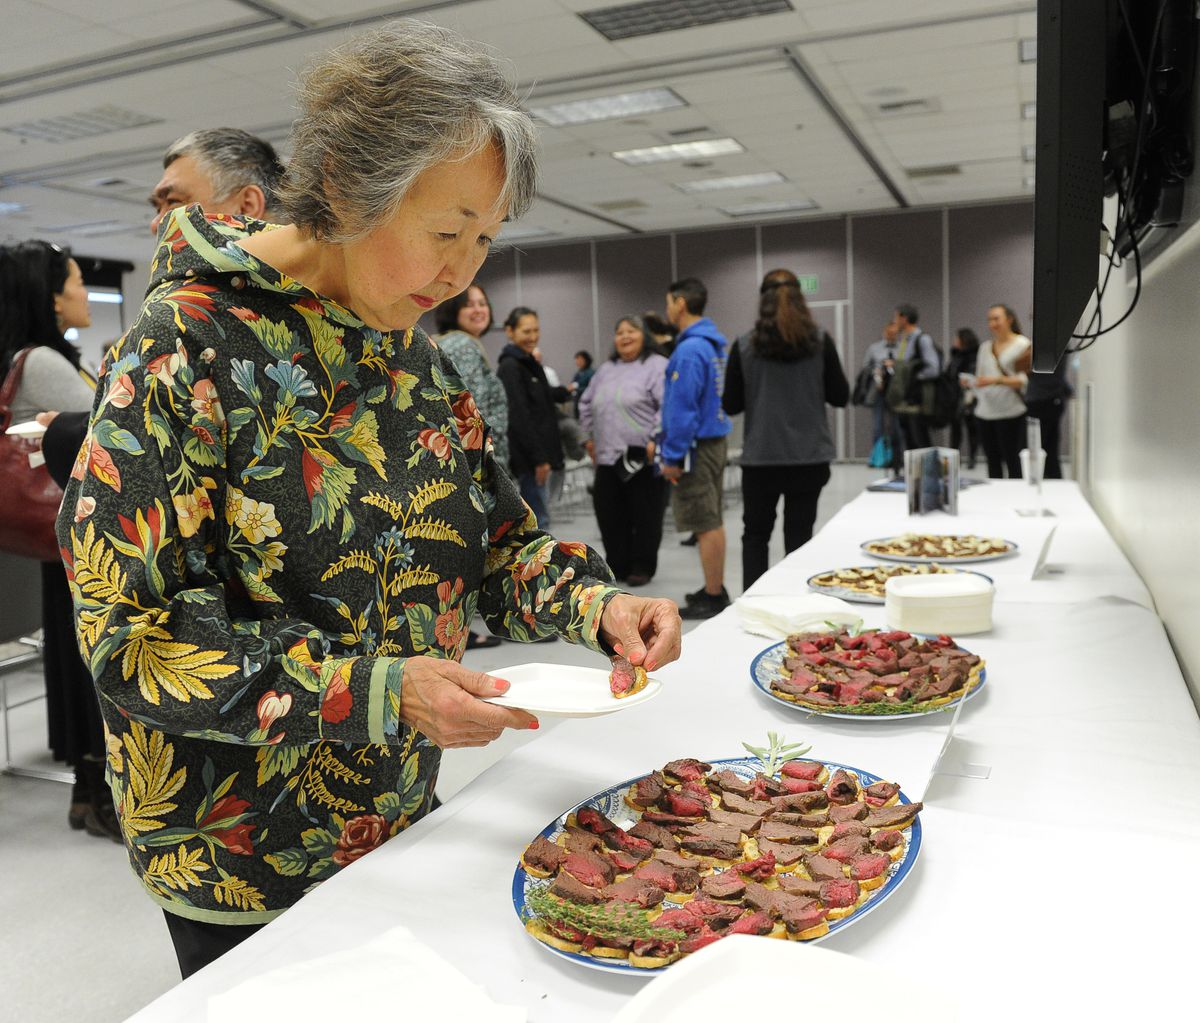 Pearl Johnson, with the Midnight Sun Reindeer Ranch, samples some of their reindeer snacks at Perspectives in Circumpolar Reindeer Production at the Arctic Council event at the University of Alaska Fairbanks on Wednesday. (Bob Hallinen / Alaska Dispatch News)